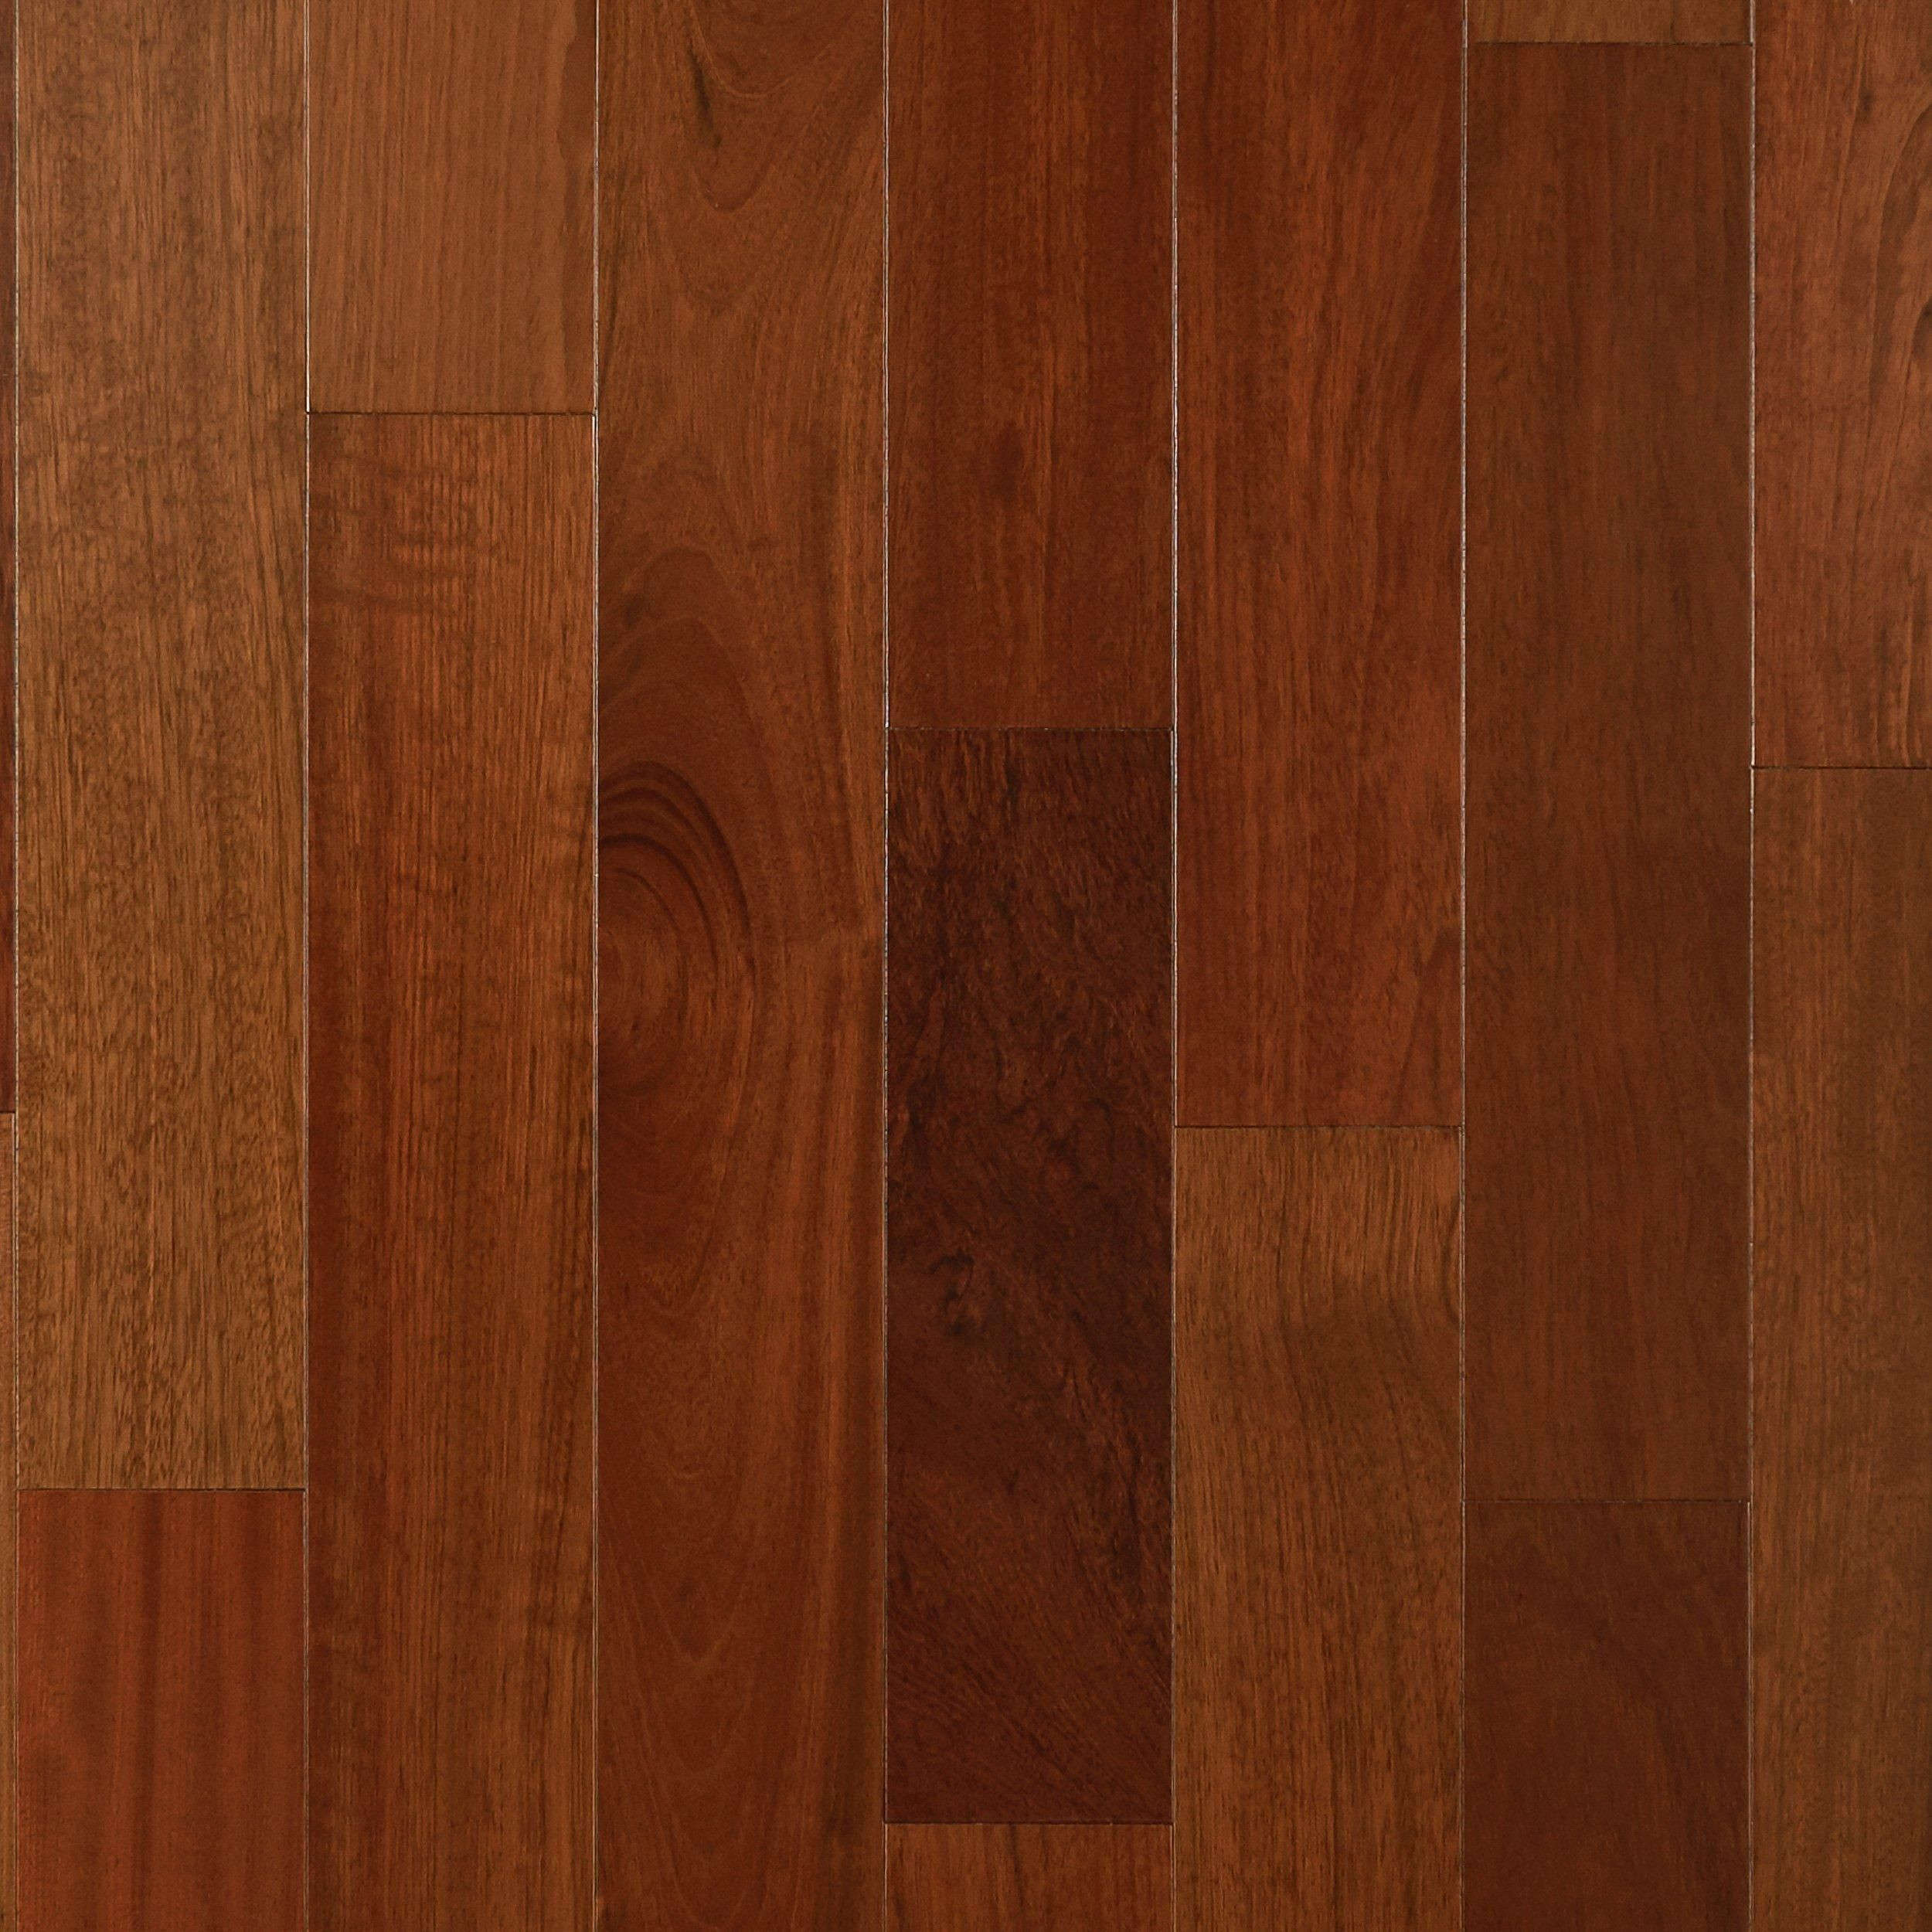 Recommended Humidity Level for Hardwood Floors Of Alea Brazilian Cherry Smooth Locking Engineered Hardwood Products Inside Alea Brazilian Cherry Smooth Locking Engineered Hardwood